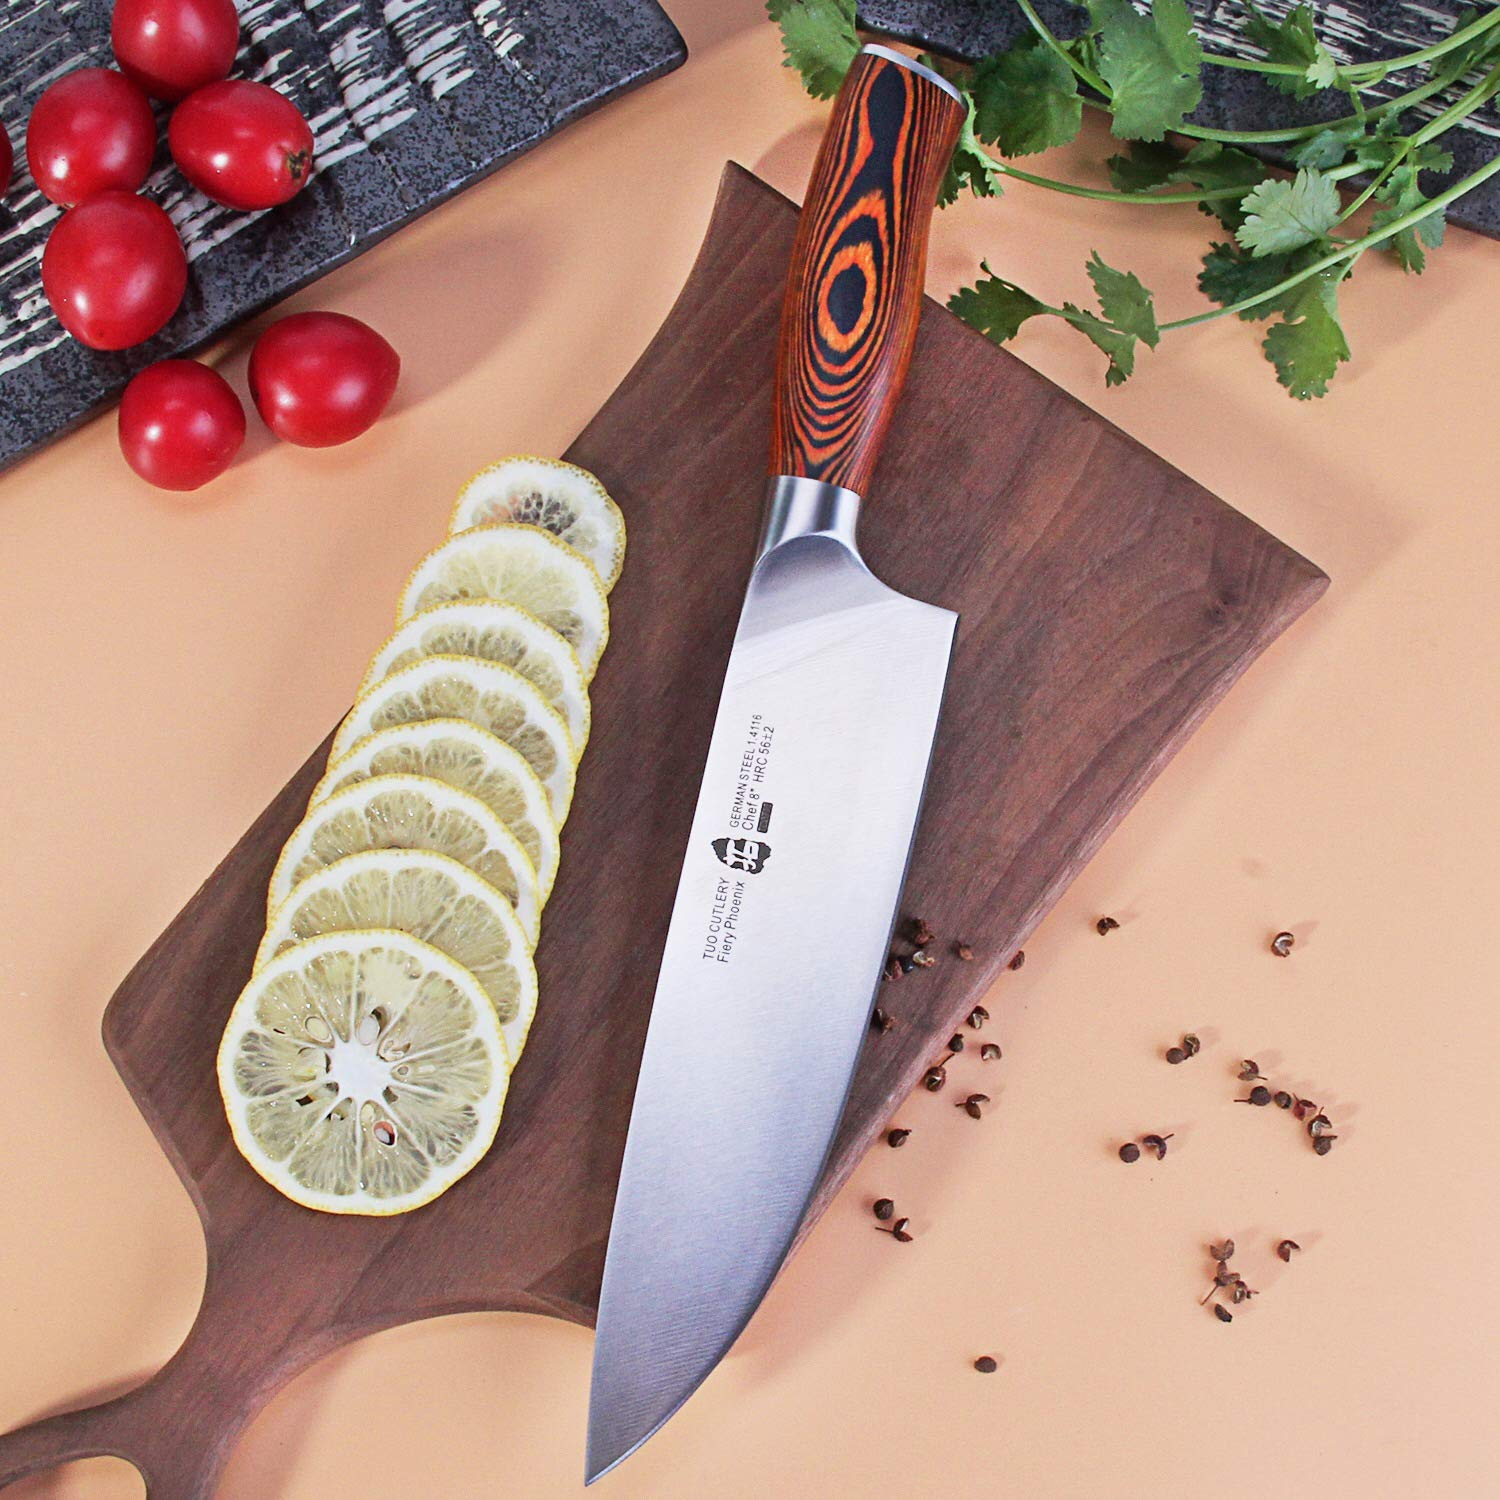 Amazon.com: TUO Cuchillo de cocina de chef de 8.0 in – HC ...